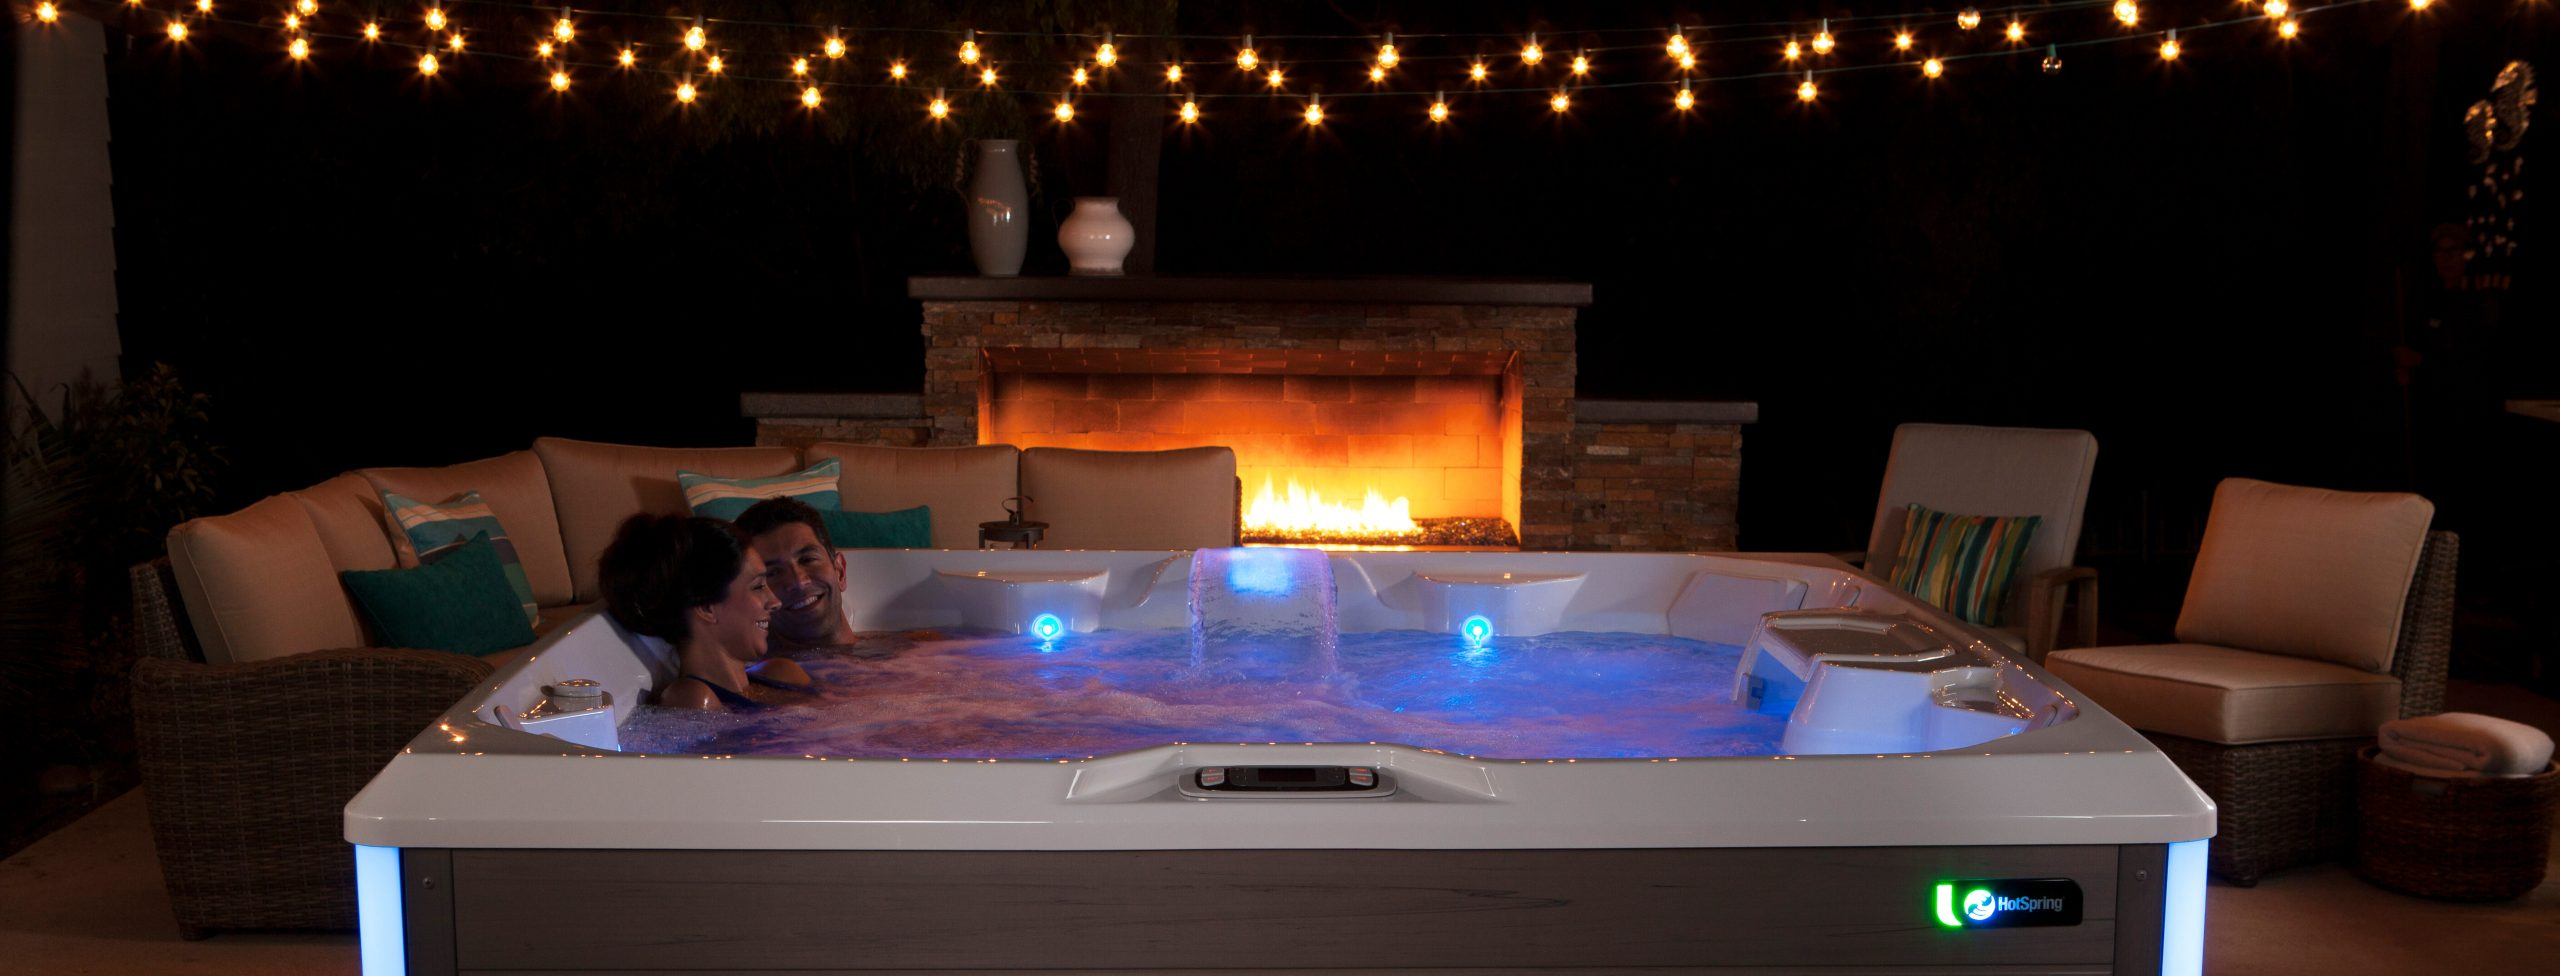 4 Tips for Your Next Hot Tub Date Night